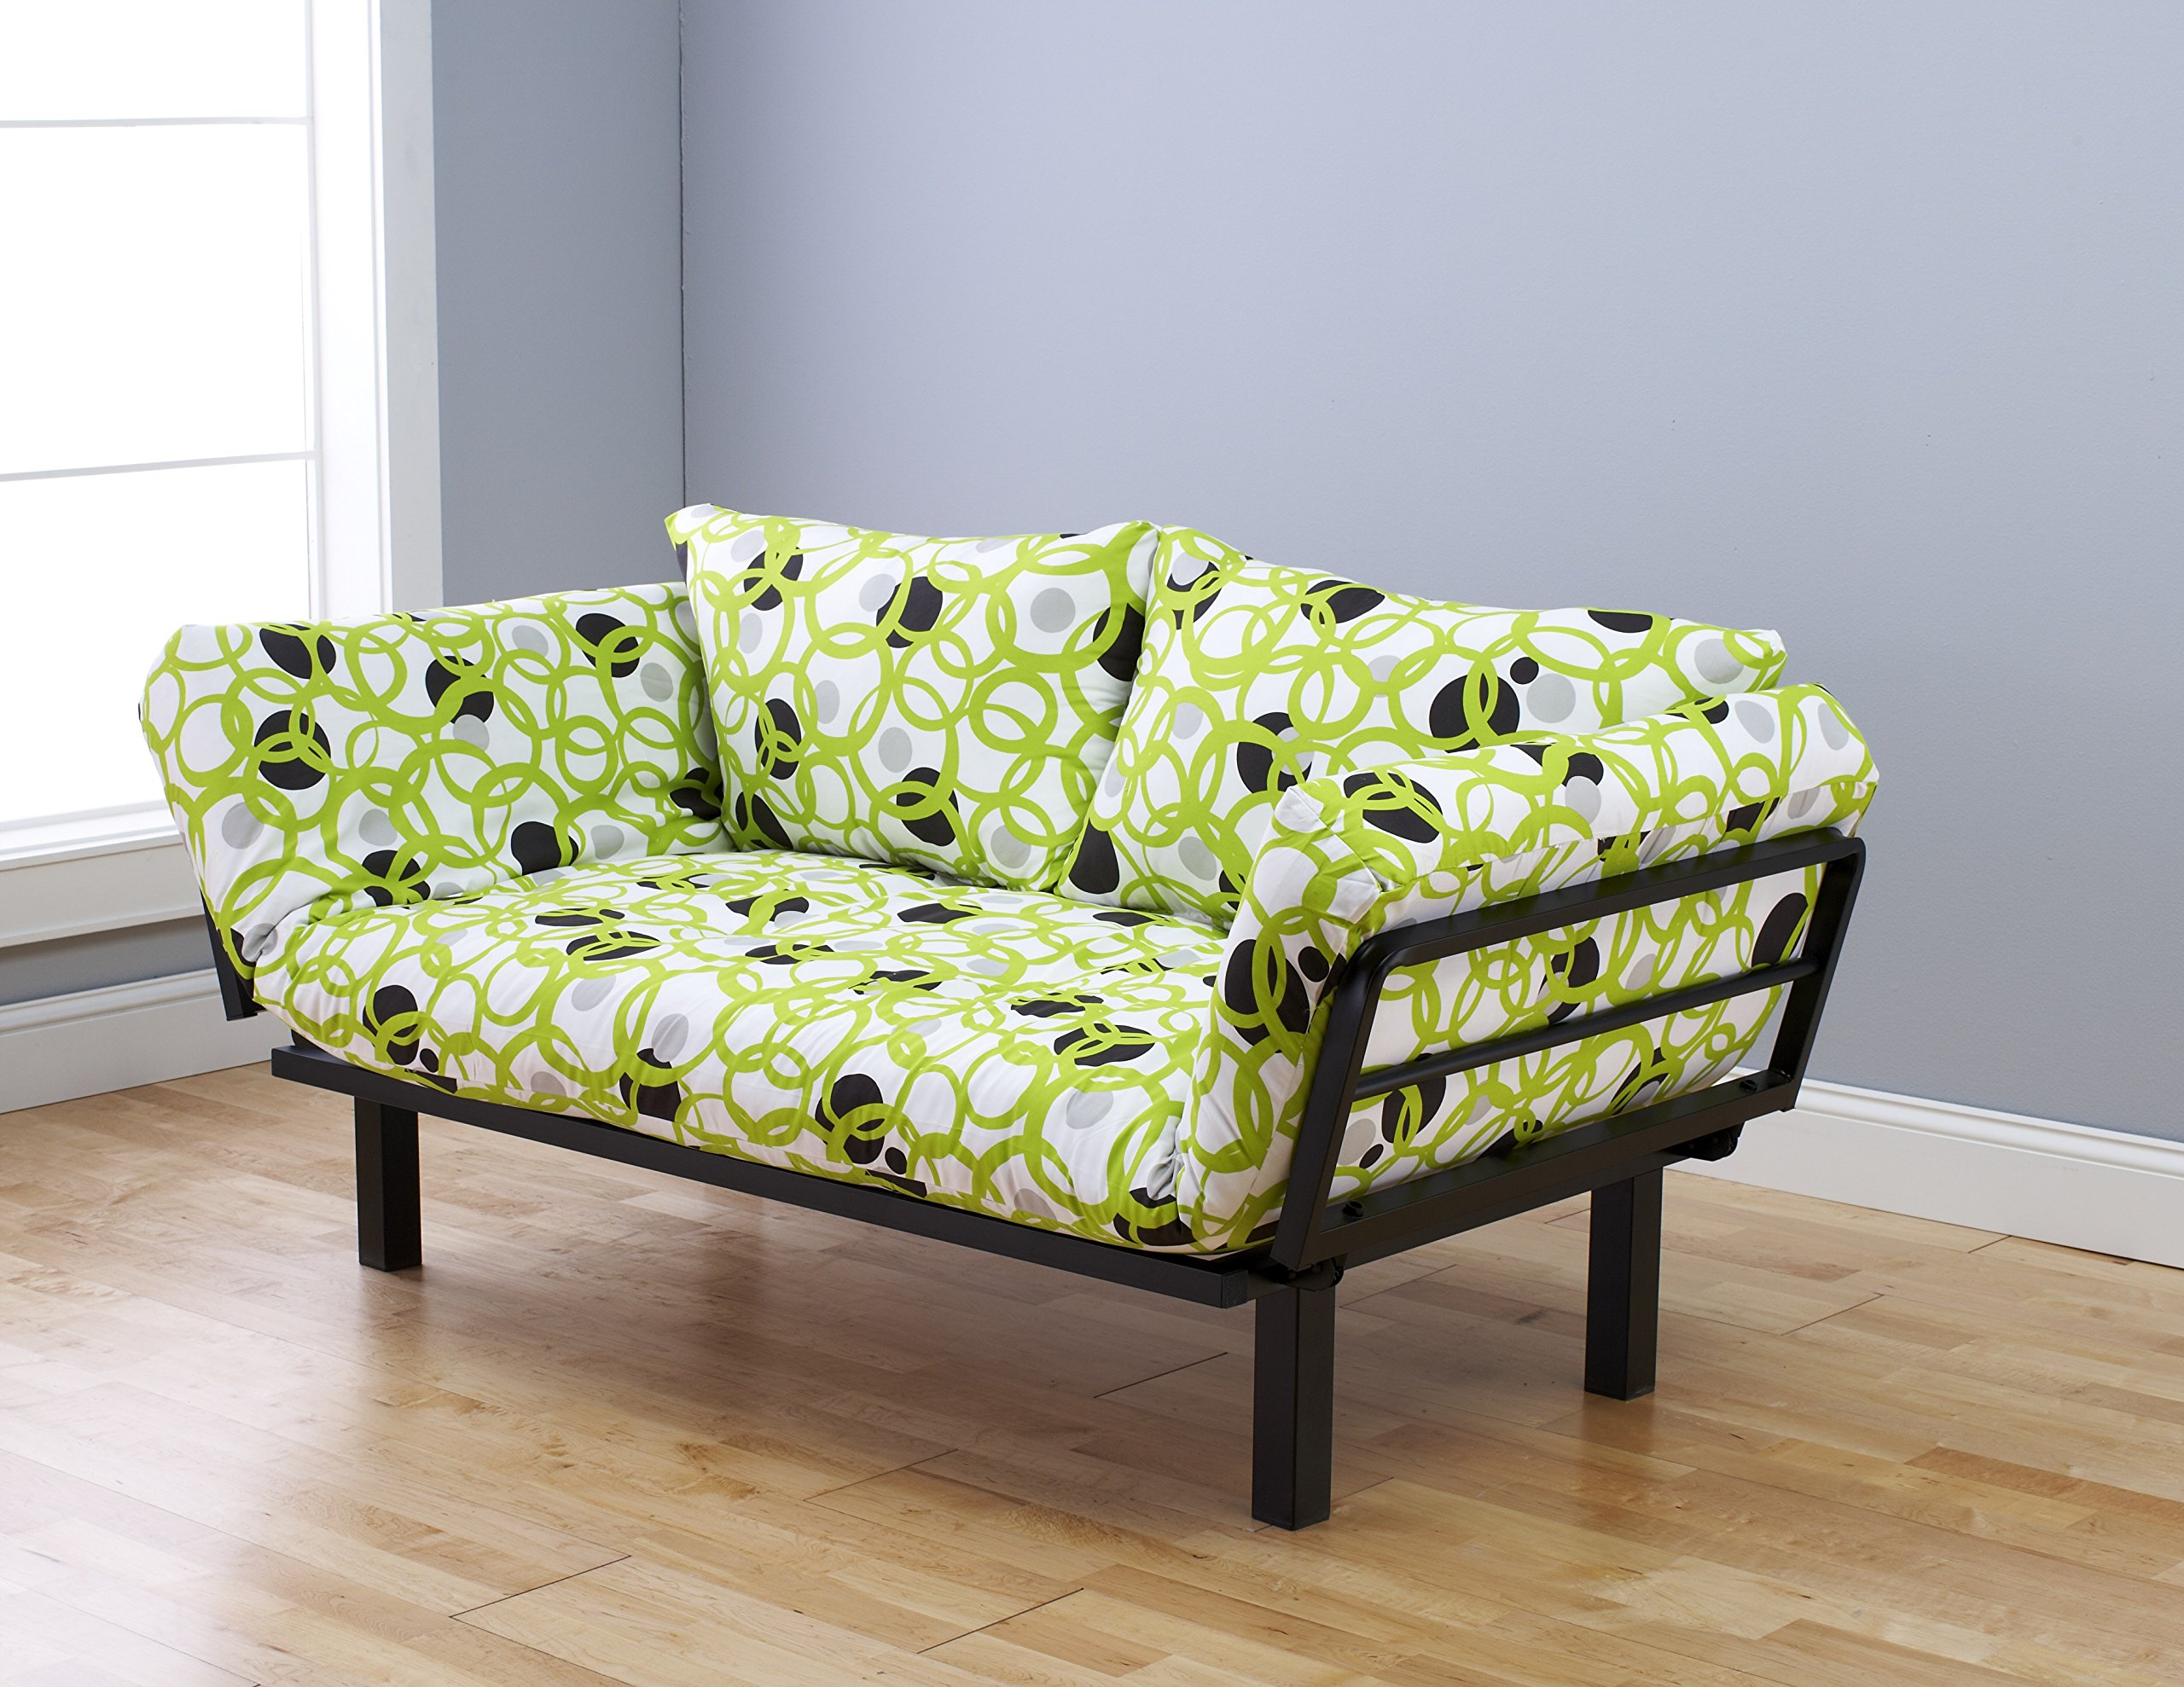 """Futon Sofa Lounger Couch and Daybed or Twin Bed Size with 6"""" Mattress. Bright Green Circle Cover Is Perfect for Smaller Bedroom, Studio Apartment, Guest Room, Covered Outdoor Porch or Patio. This Is the Best Piece of Furniture Anywhere in Your Home or O"""